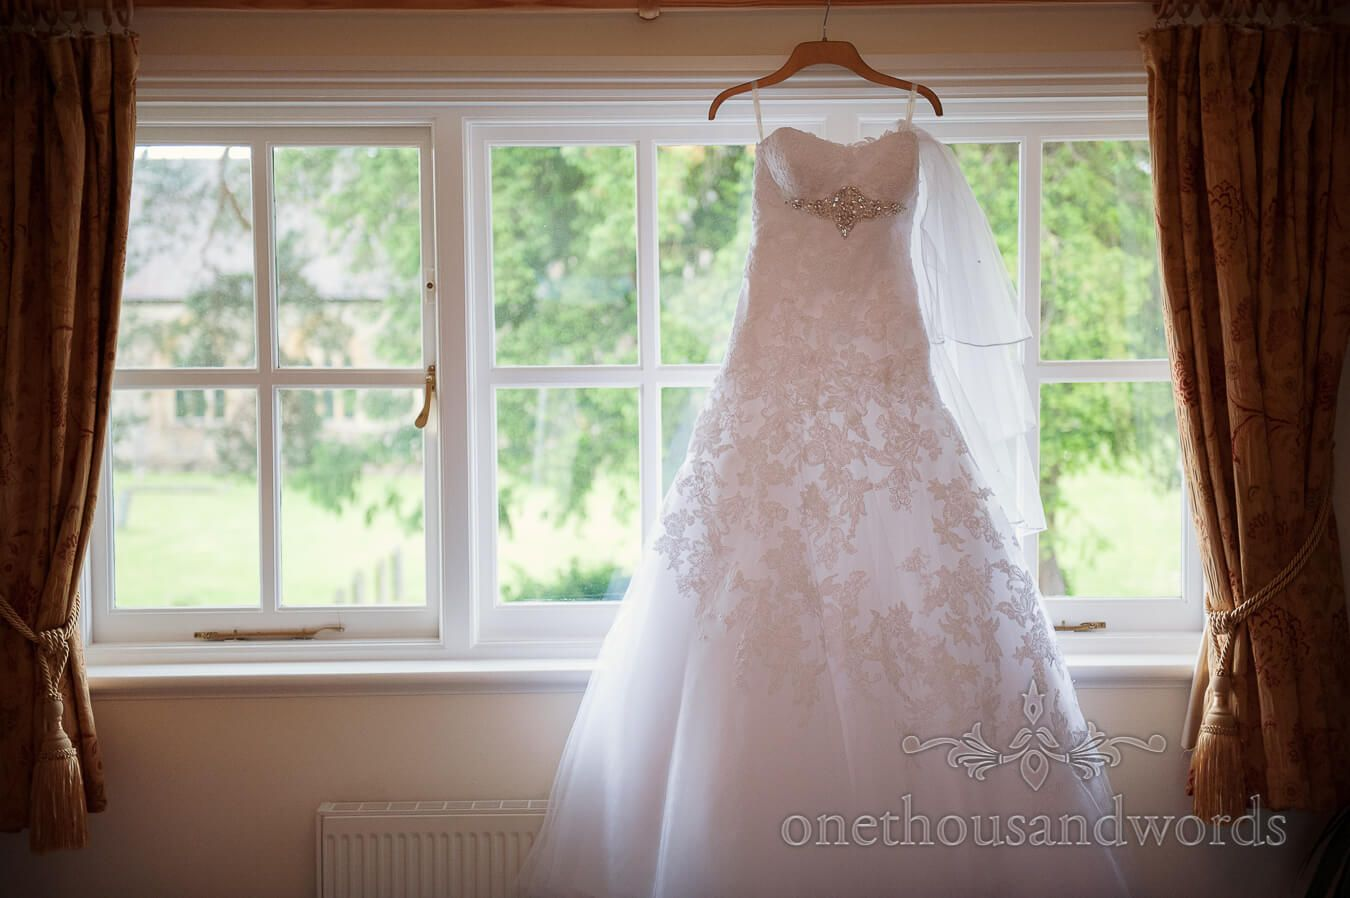 country themed wedding dresses Backlit wedding dress hangs in window at Country Theme Wedding Photography by one thousand words